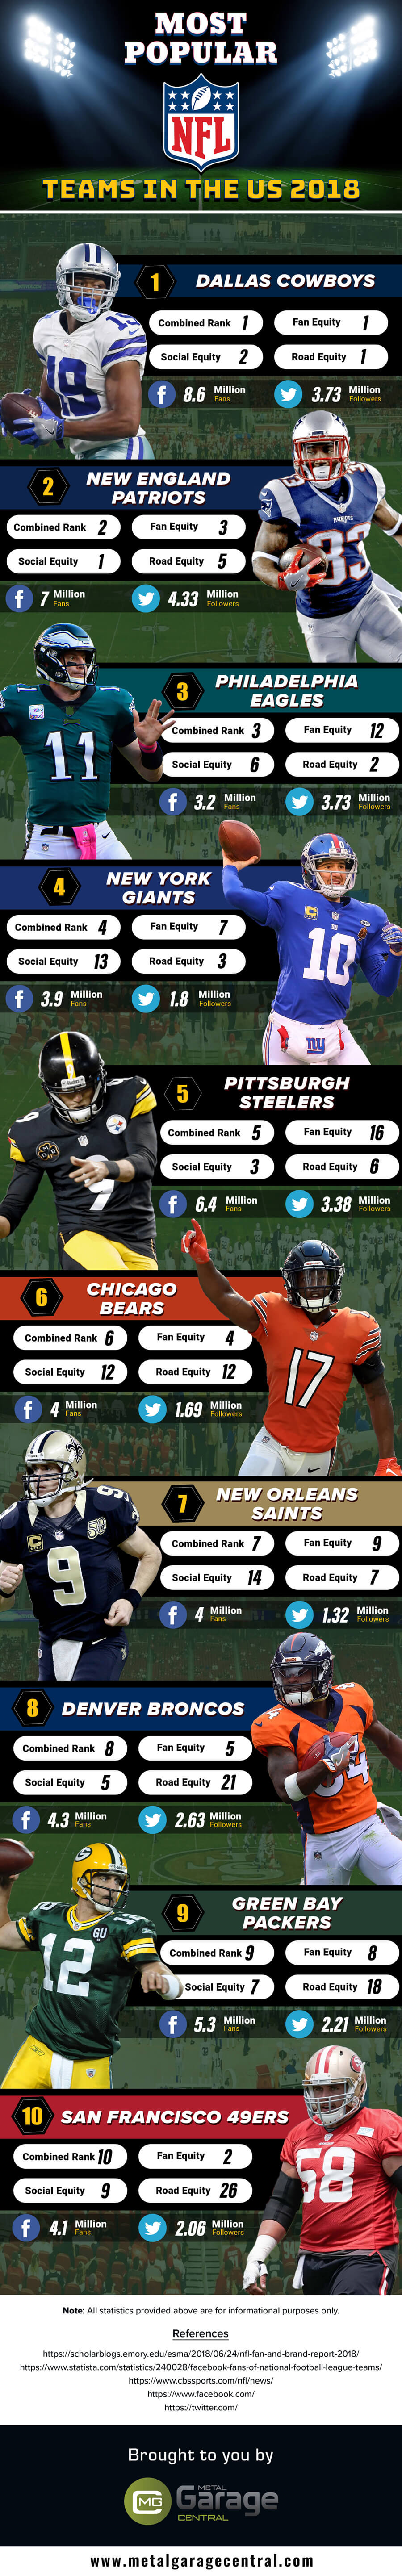 Most Popular NFL Teams in the US 2018